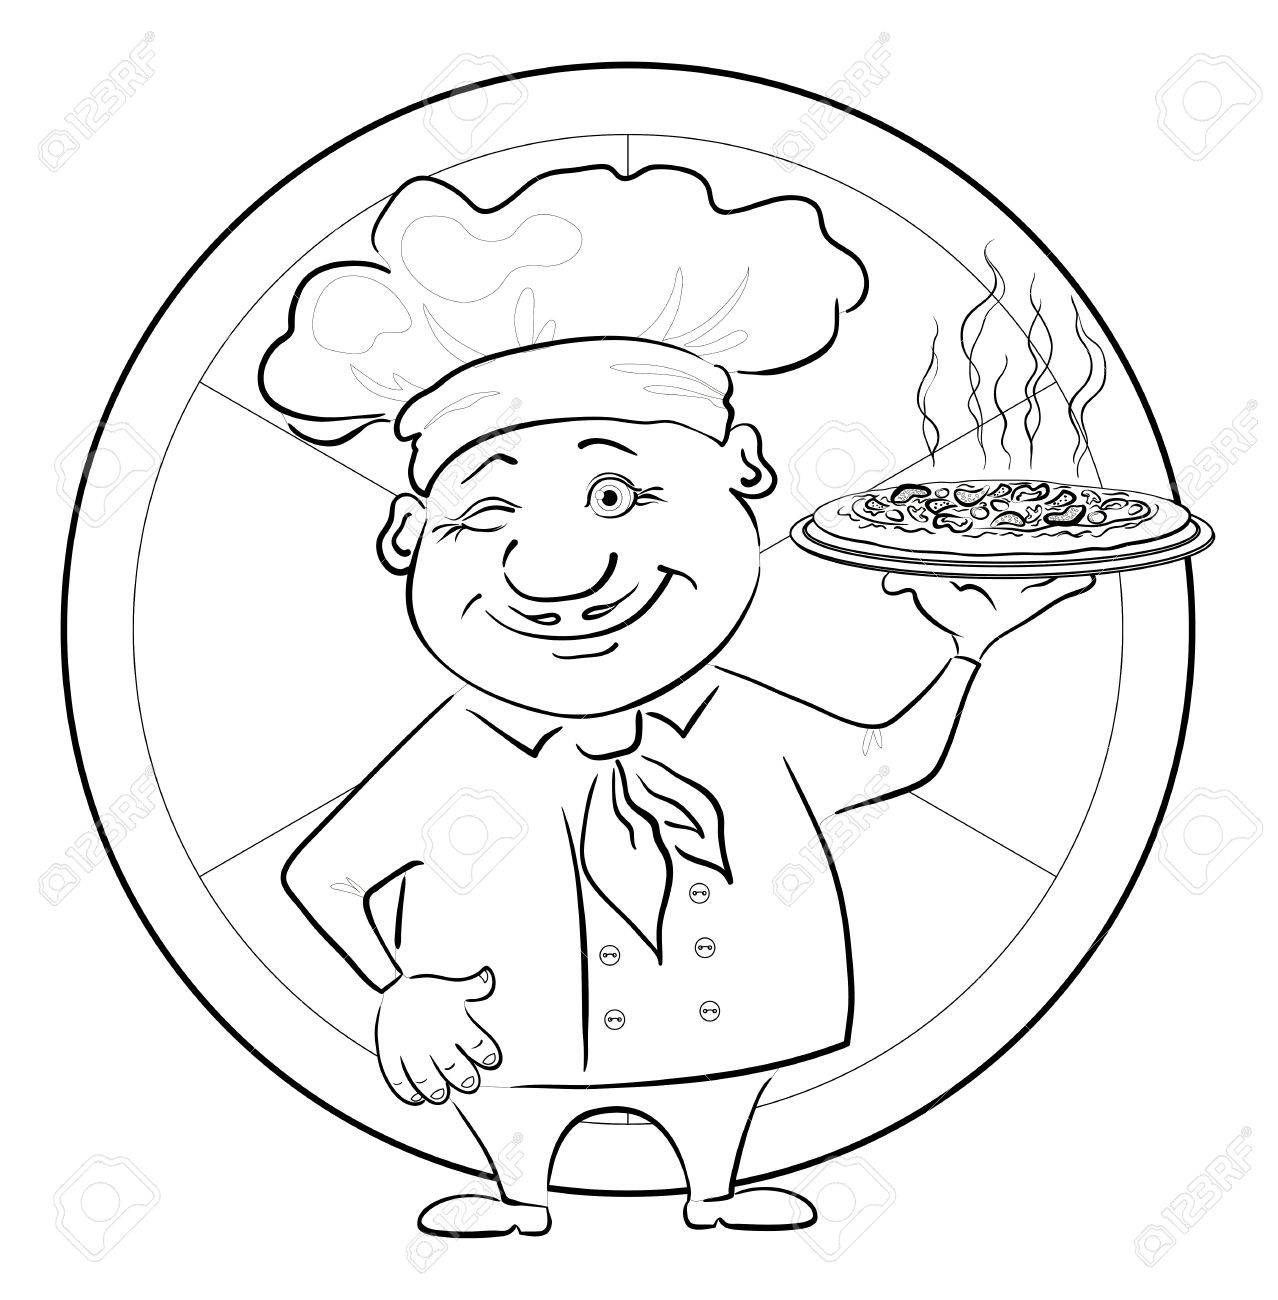 Cartoon cook - chef with delicious hot pizza on a circular background, black contour on white background illustration Stock Vector - 13837162